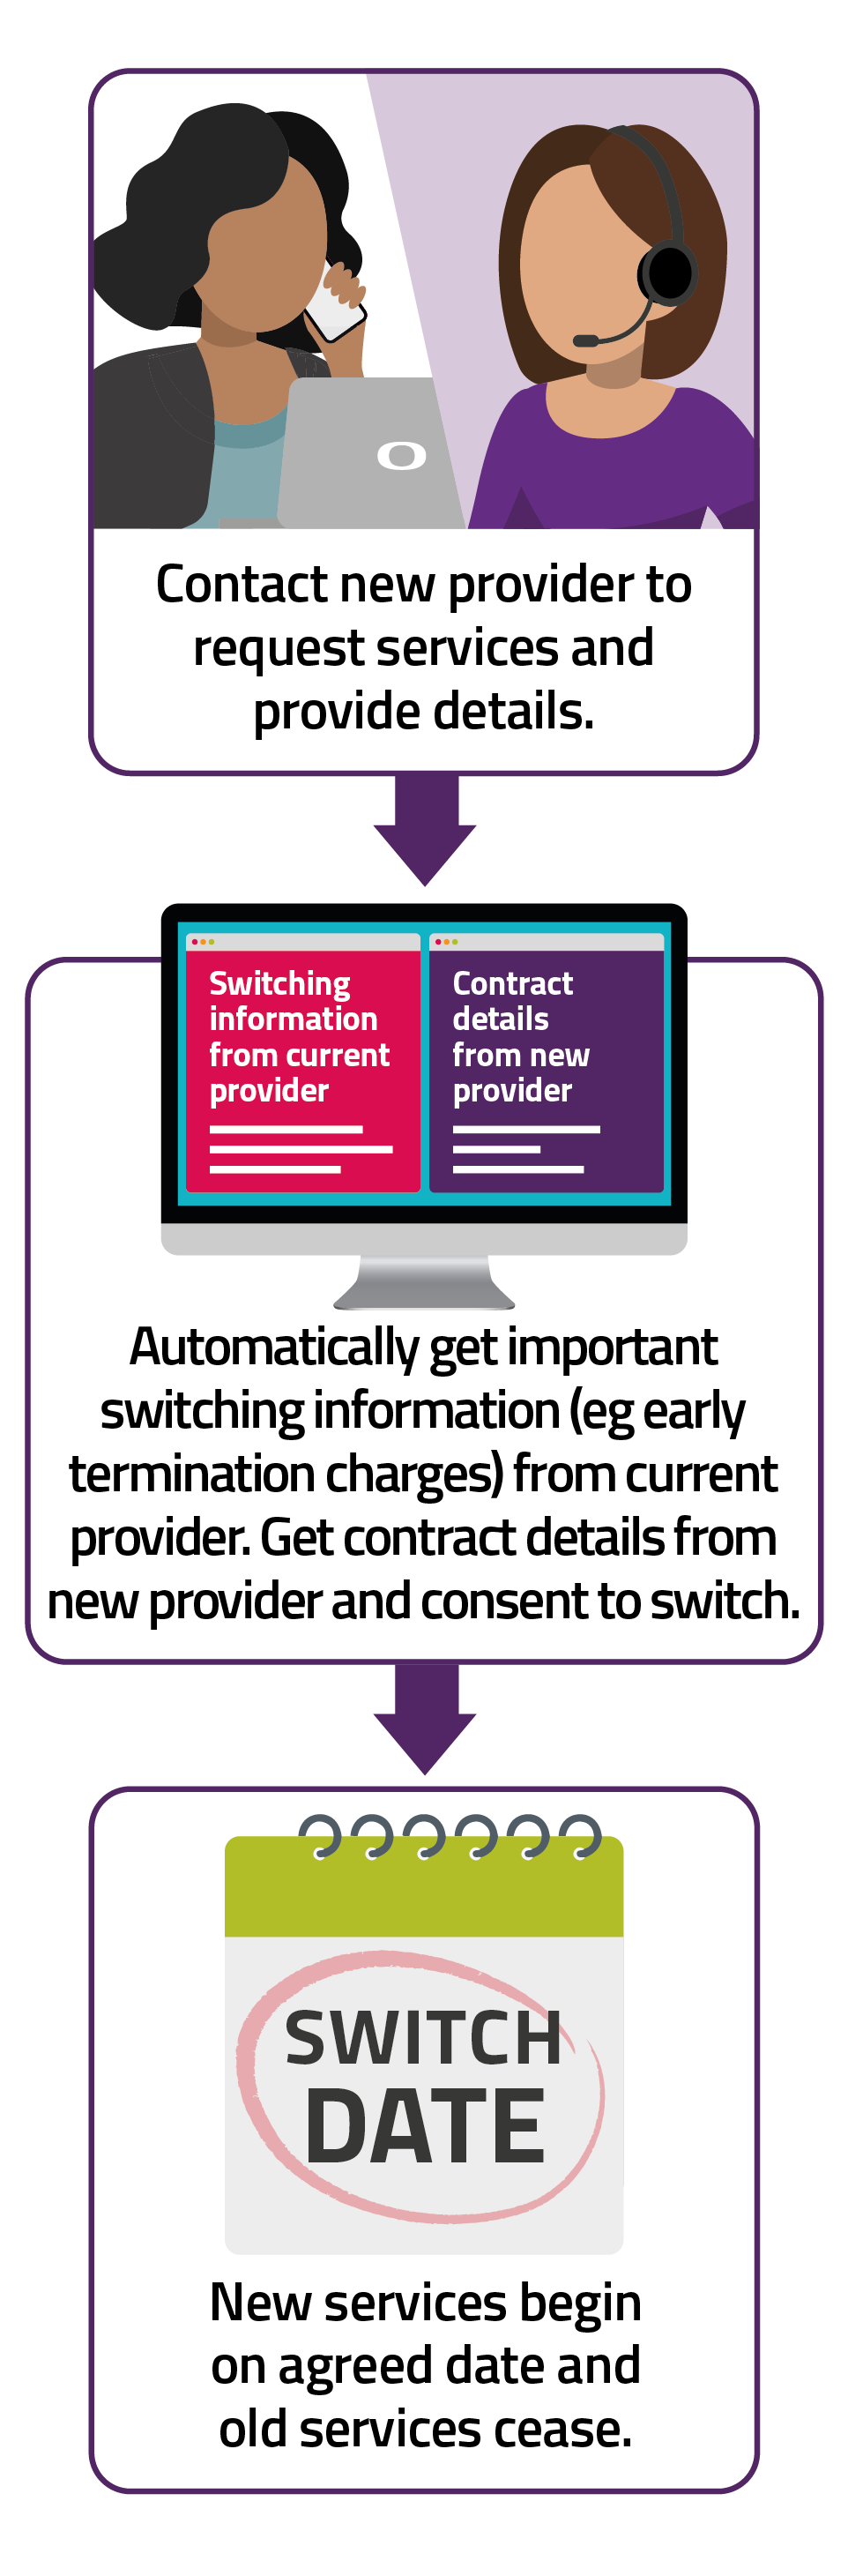 Under One Touch Switch, a customer contacts their chosen new provider and provides their details. The current provider automatically gives the customer switching information (for example early termination charges, the impact of the switch on other services). If they decide they want to go ahead, they confirm this with their new provider. The new provider then manages the switch.